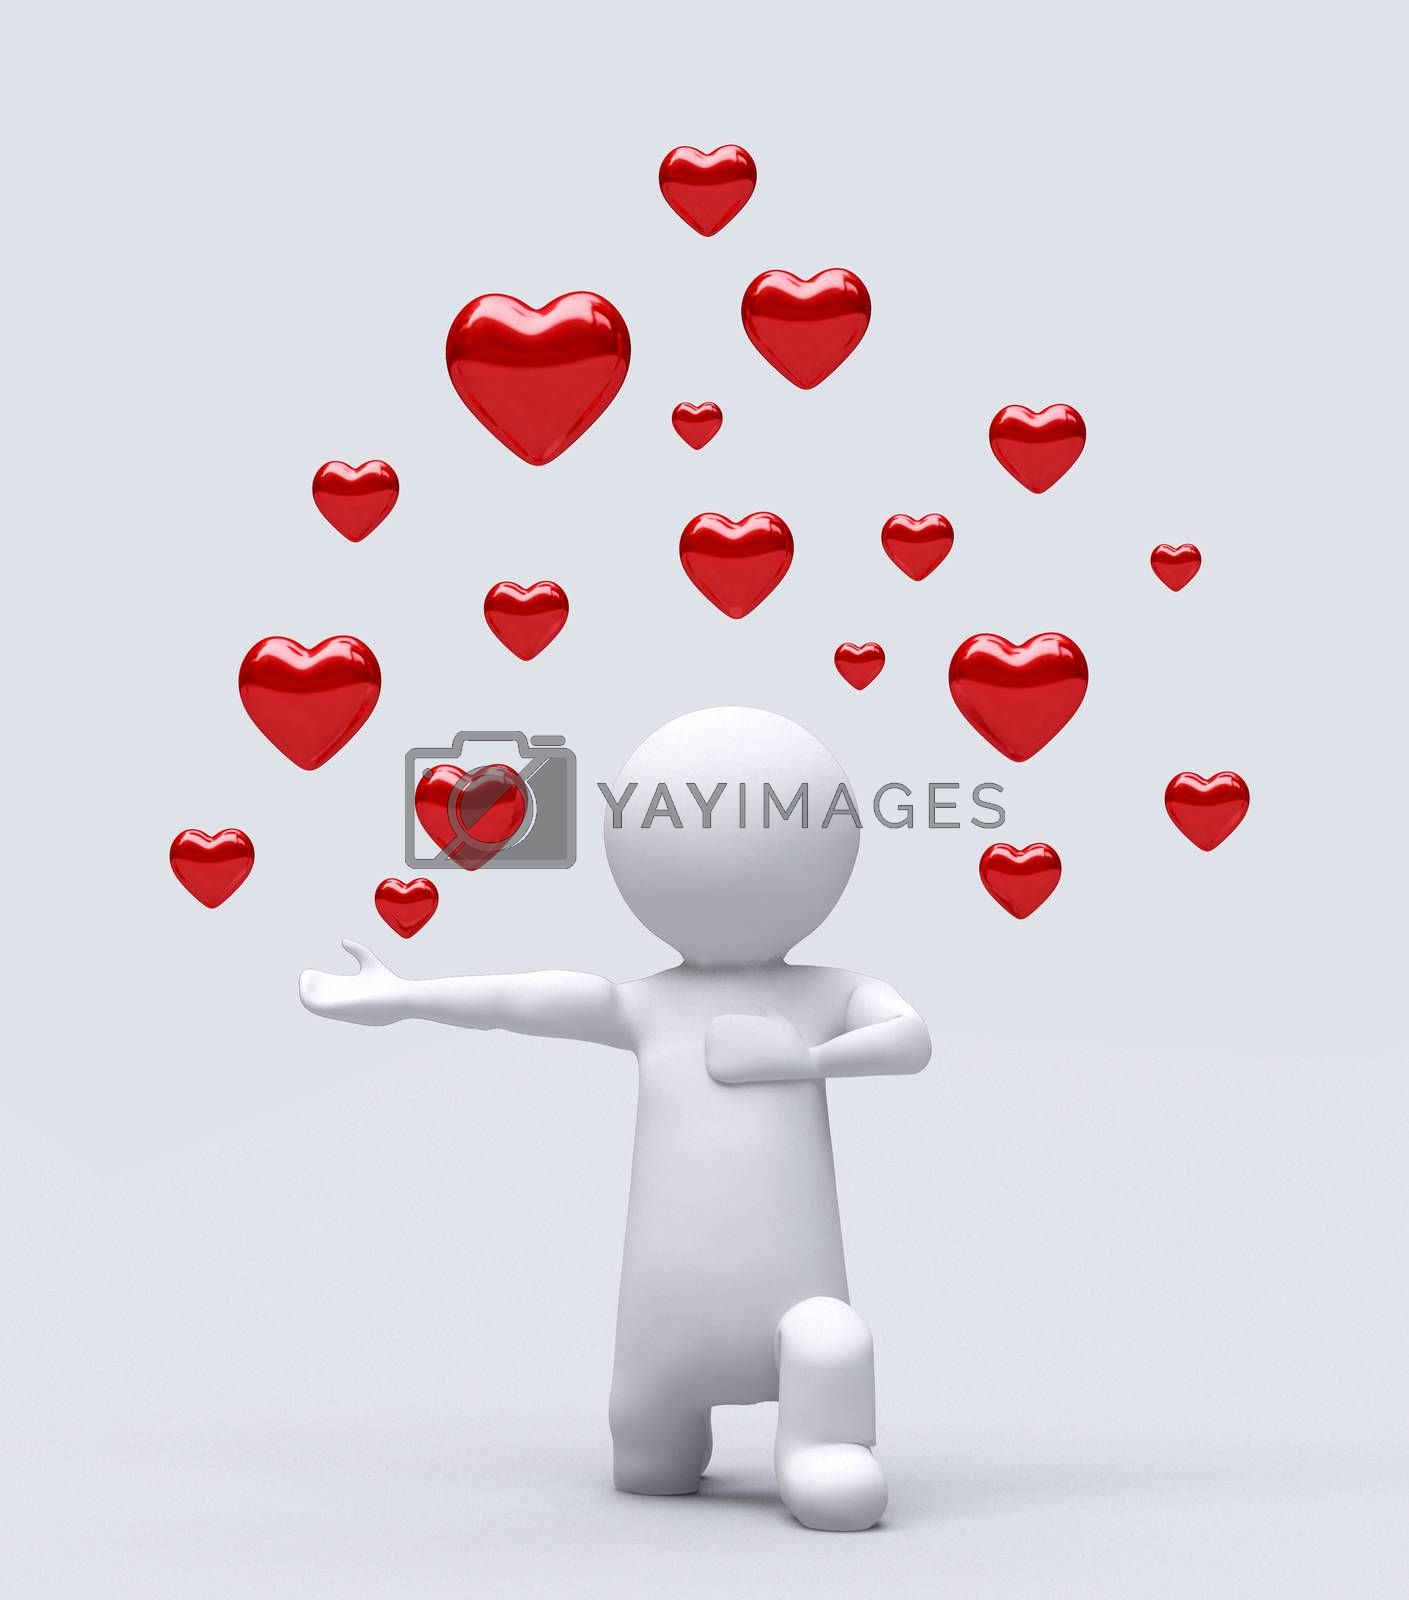 valentines day, I love you, romantic background. by hakan kacar